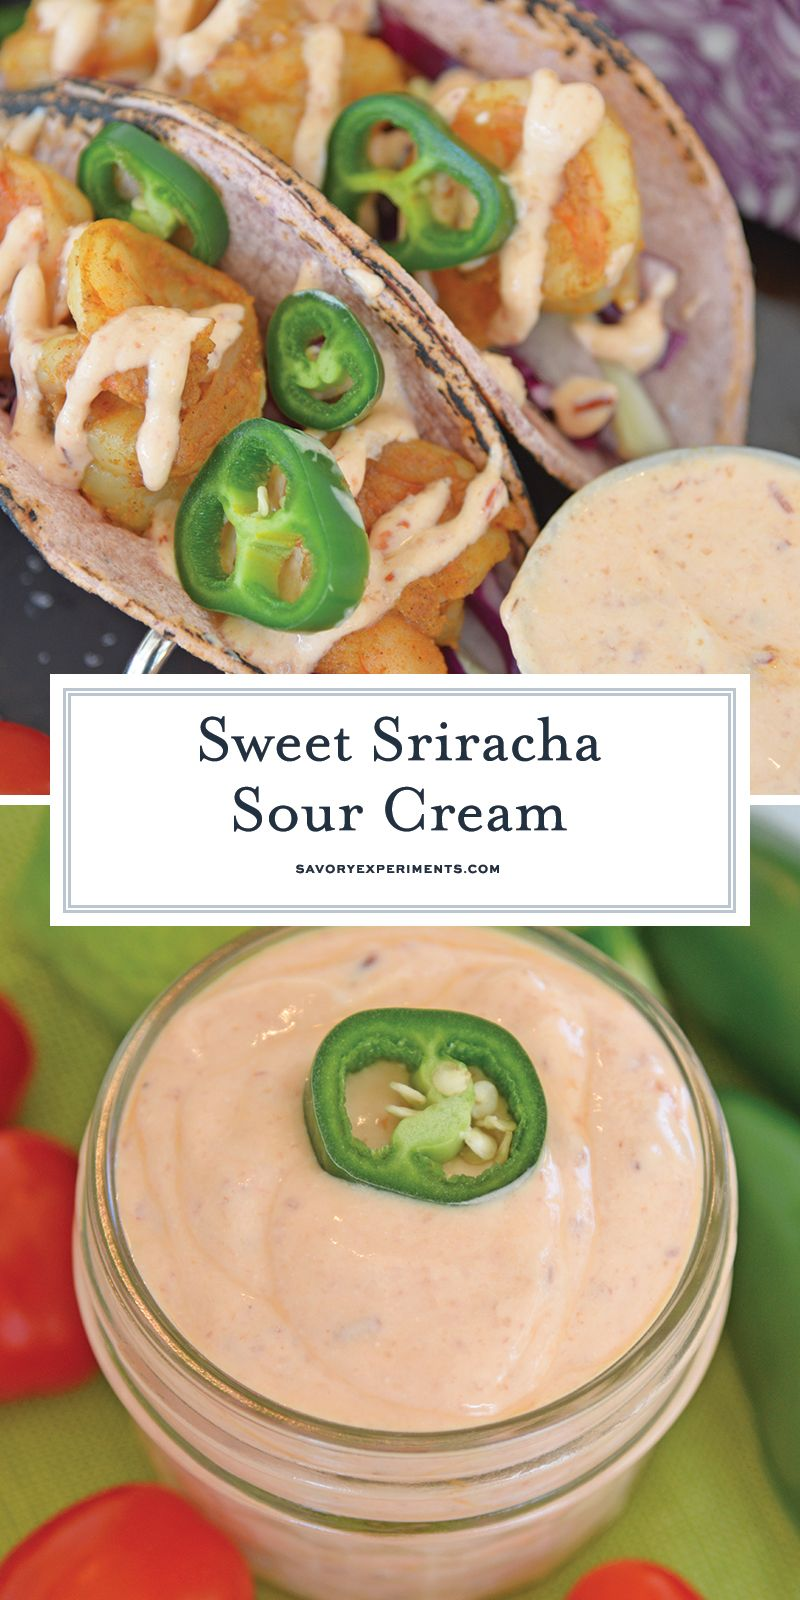 When It Comes To Homemade Sauce This Sweet Sriracha Sour Cream Is The Best Perfectly Sweet And Spicy Sour Cream Sauce Sour Cream Recipes Homemade Condiments